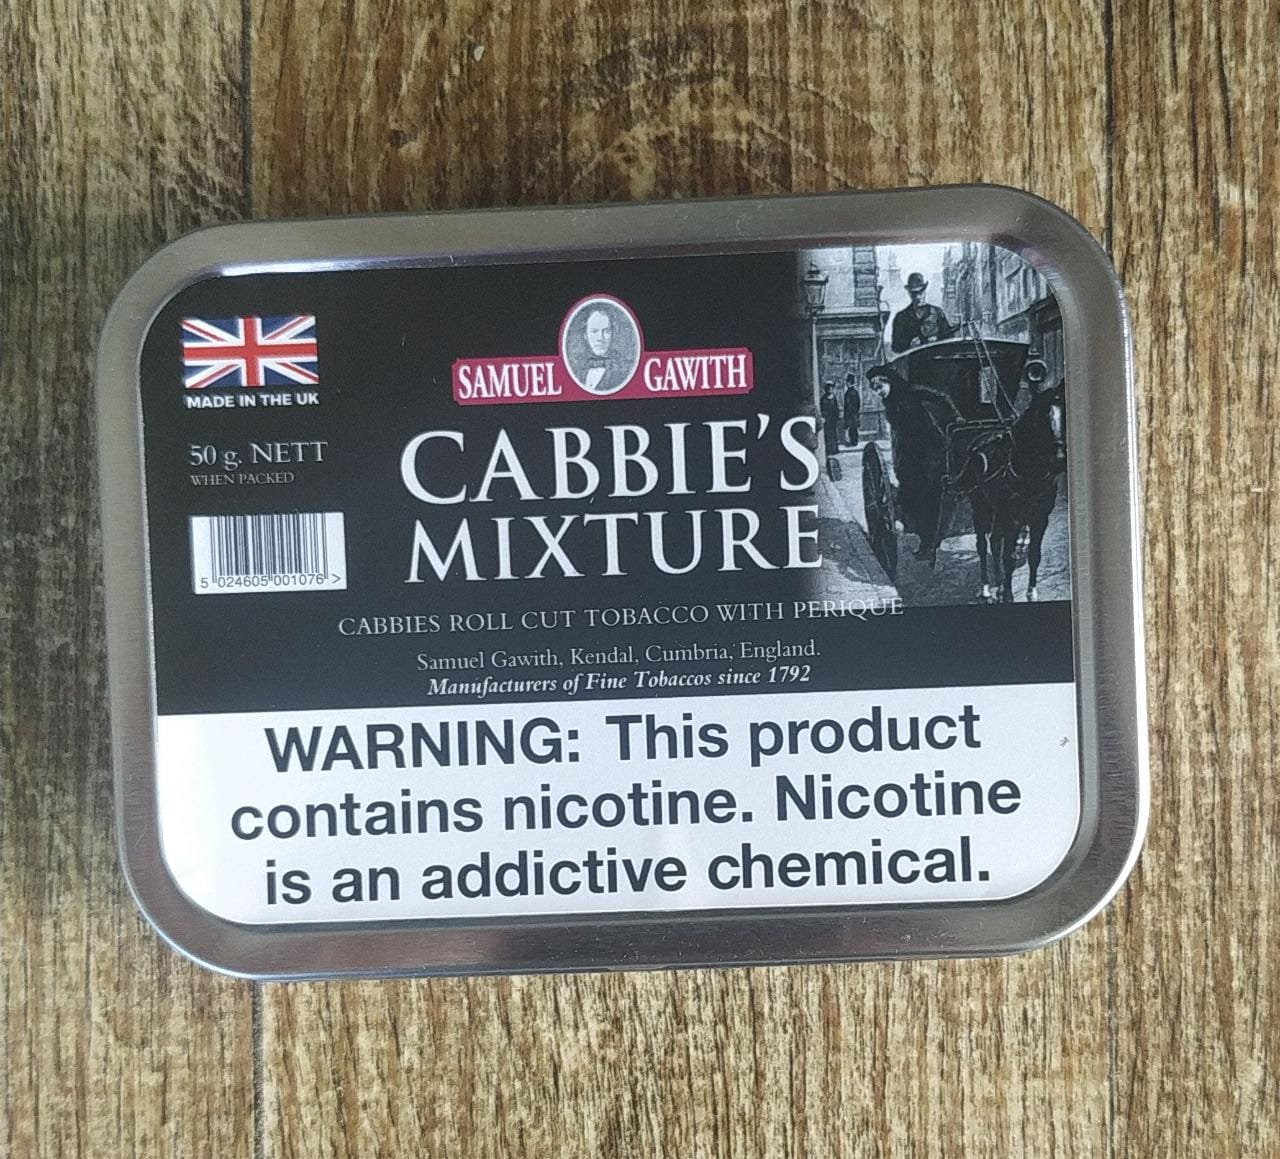 Samuel Gawith - Cabbie's Mixture